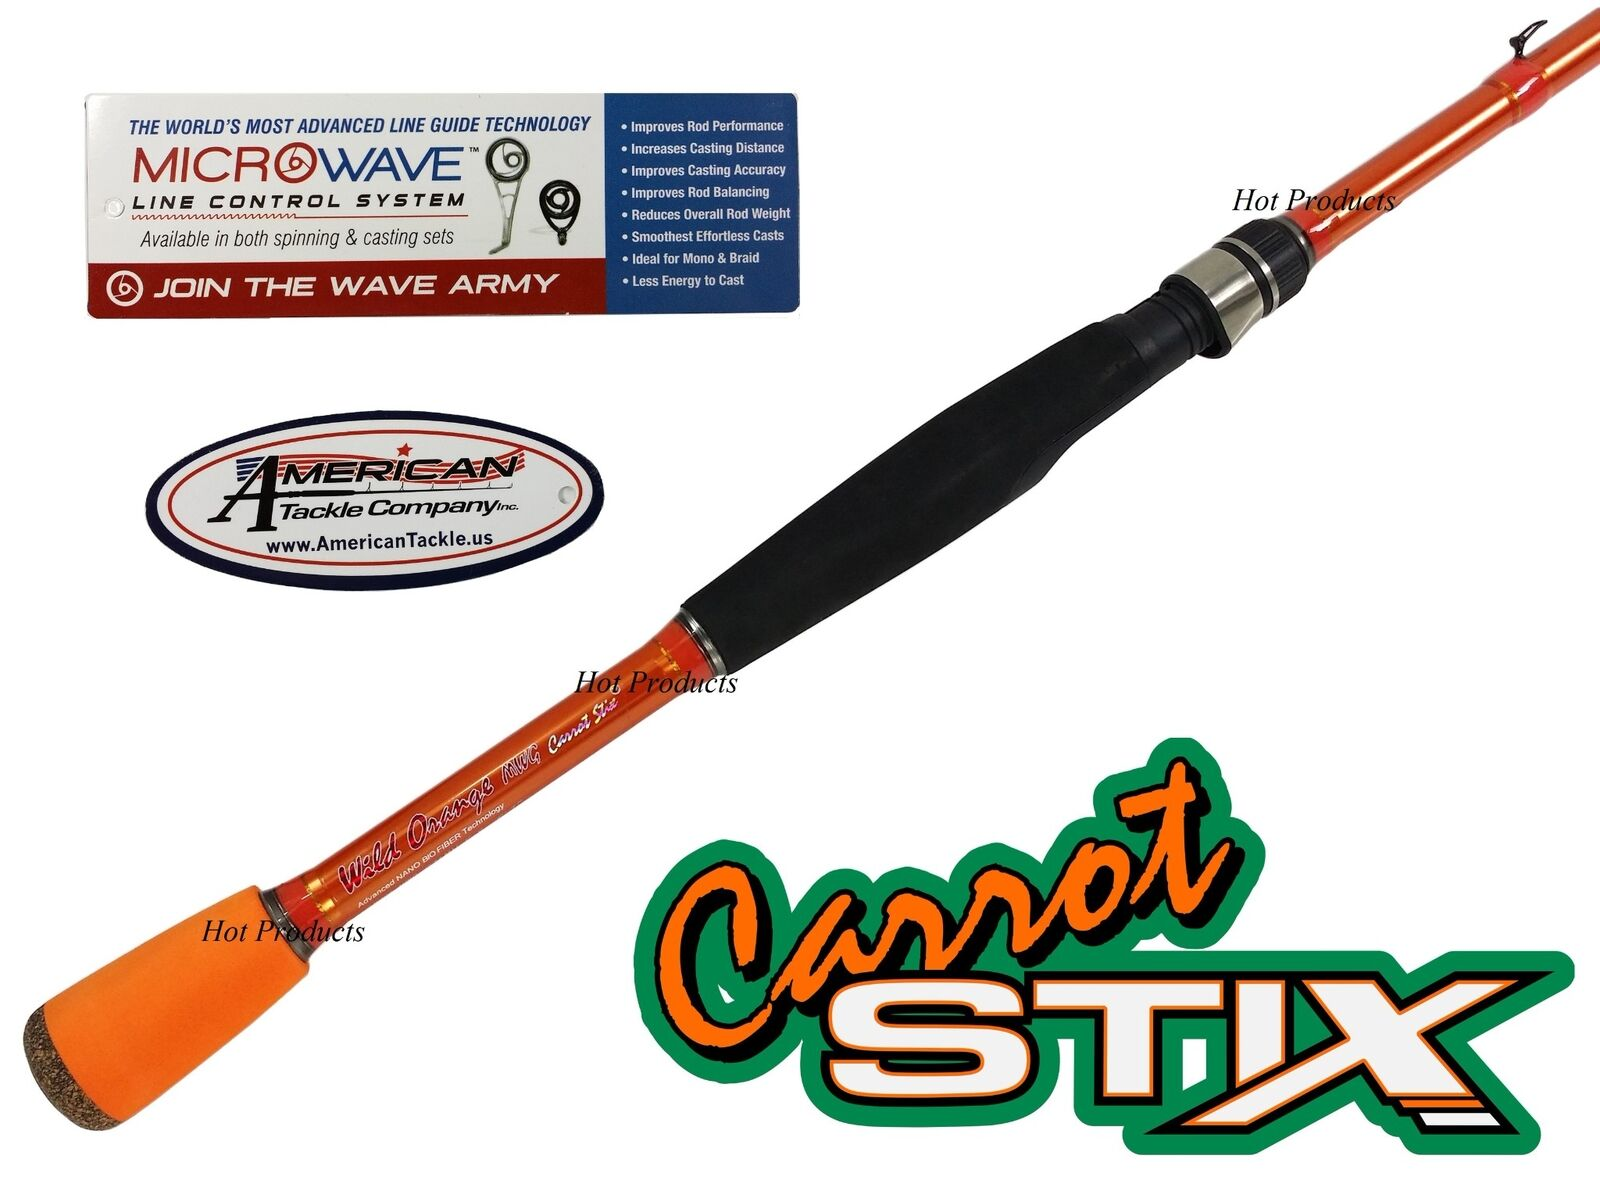 Carred Stix SPINNING 7' MEDIUM LIGHT Wild orange PLUS MicroWave Guide Fishing Ro